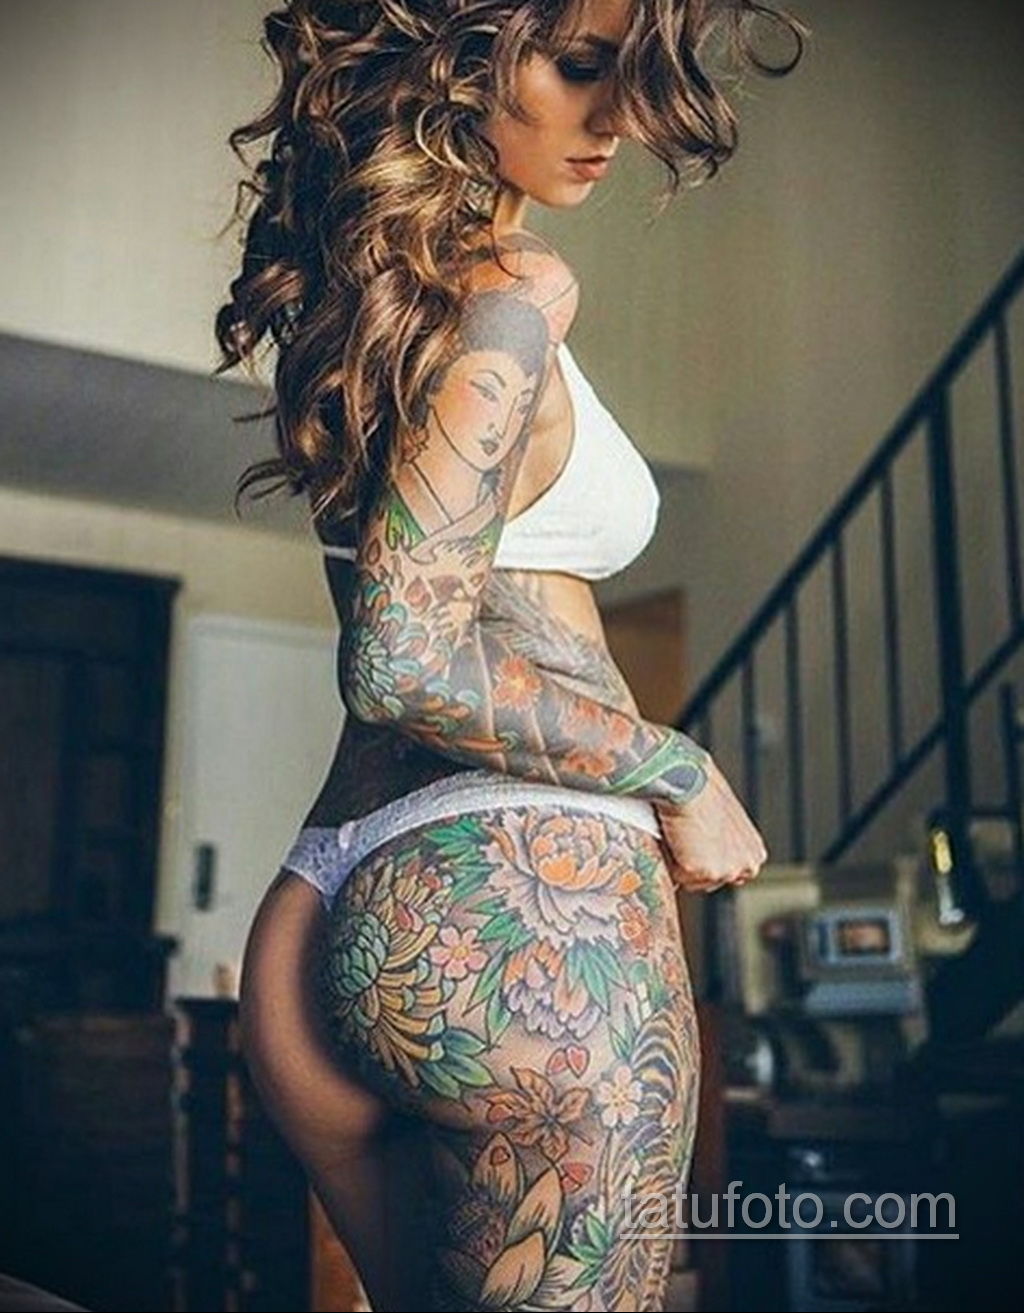 Meet The Woman With A New Car's Worth Of Tattoos